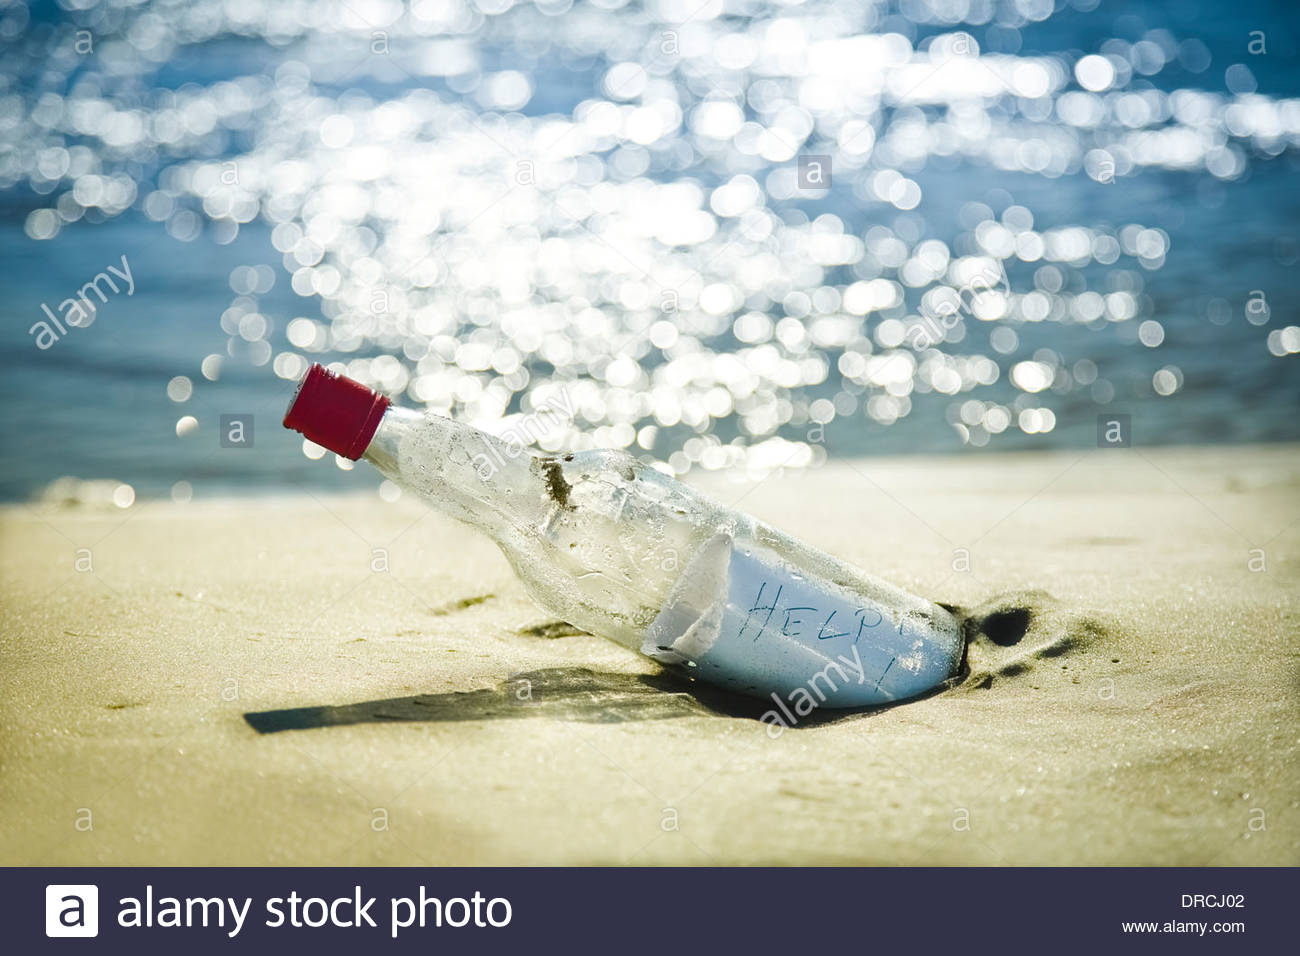 Message in bottle on beach - Stock Image